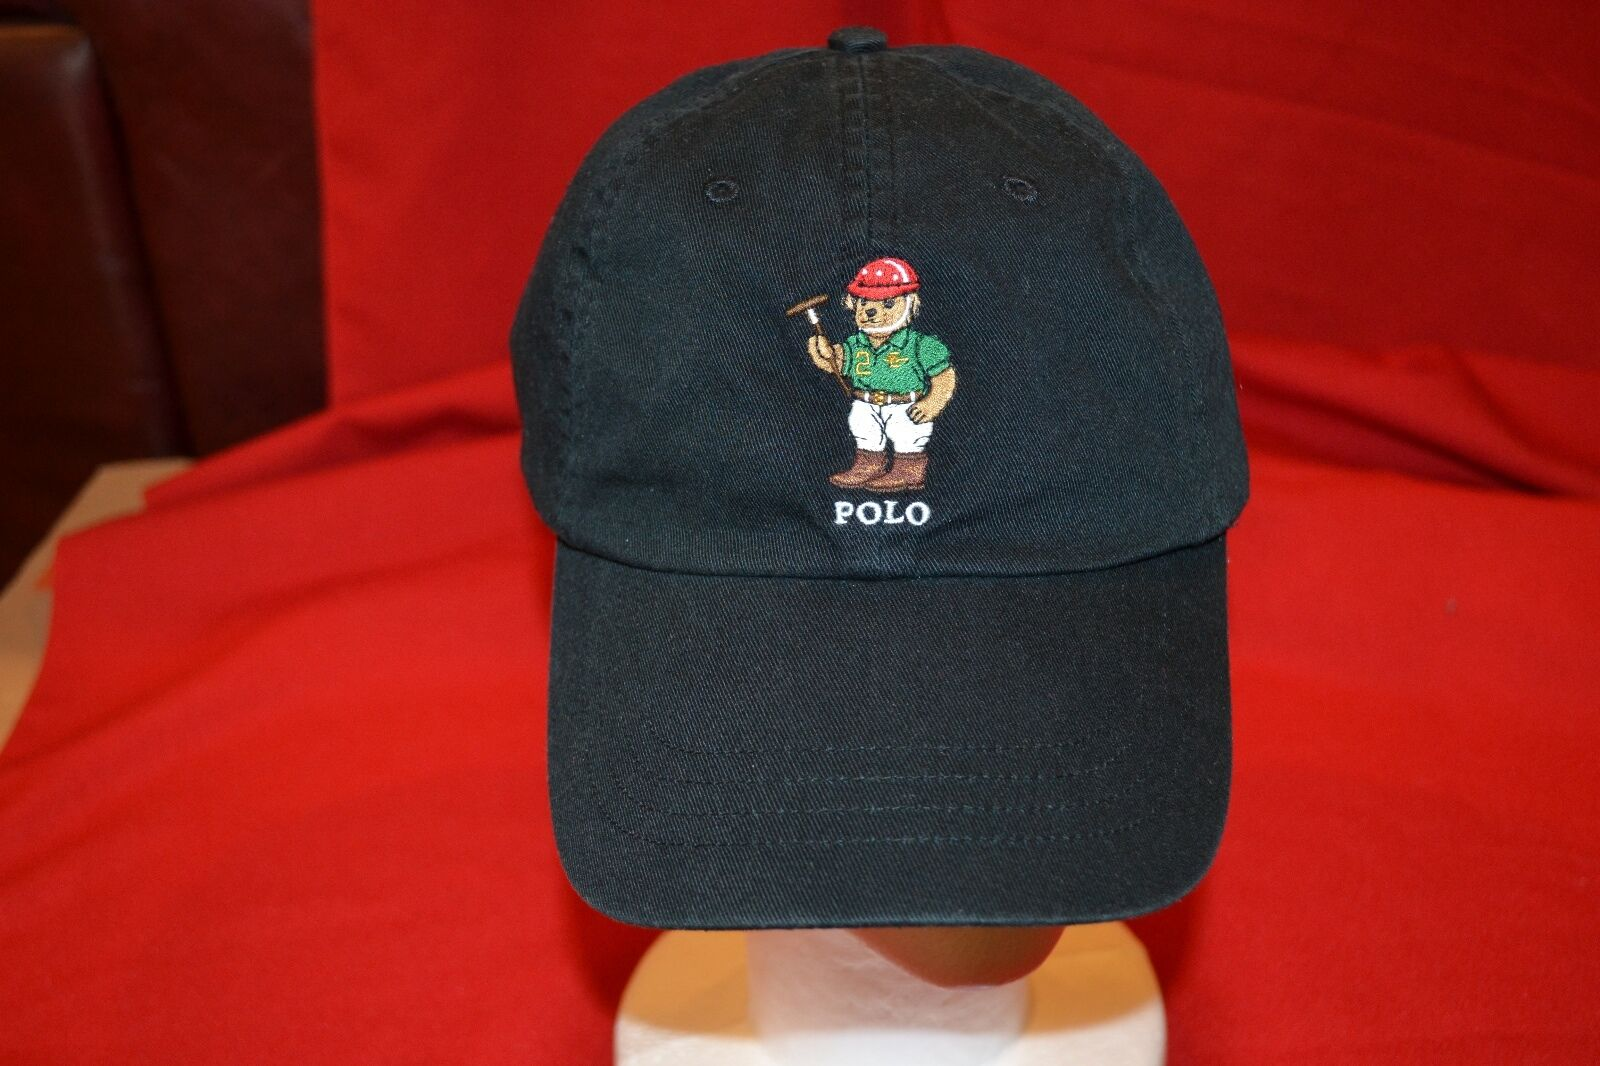 Polo Ralph Lauren Bears RARE Bear Hat Cap Golf Black 6512200 Rl14 ... d374accdb8e5